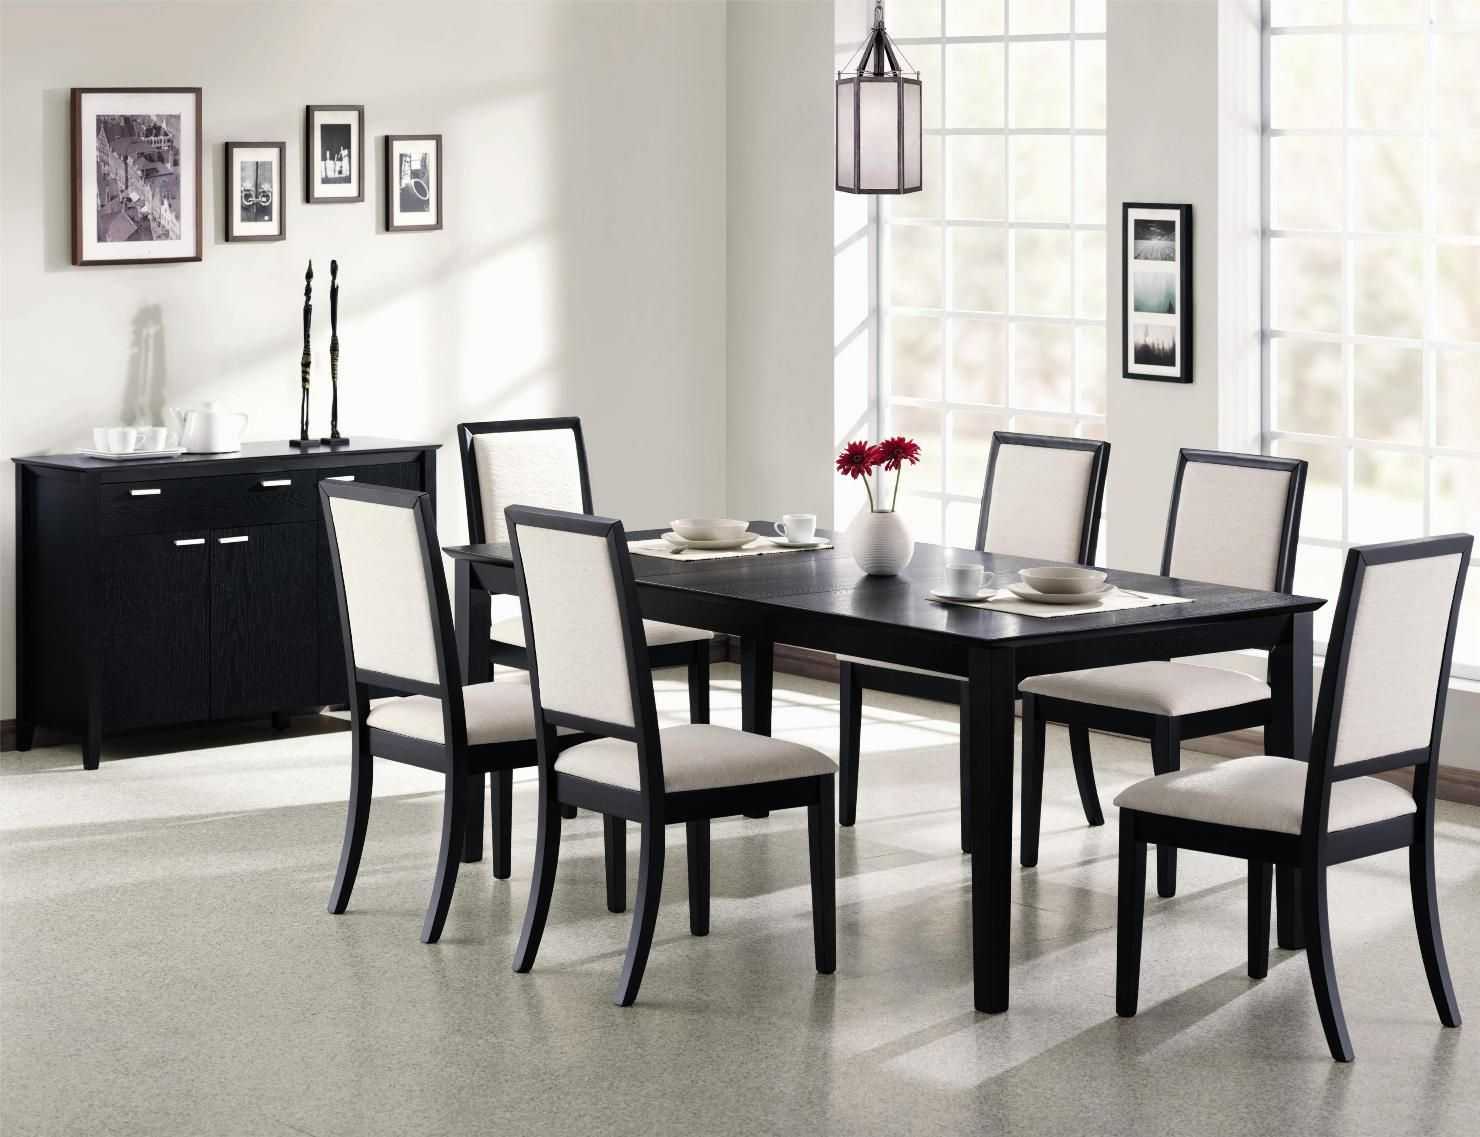 Tables for dining room. How to choose